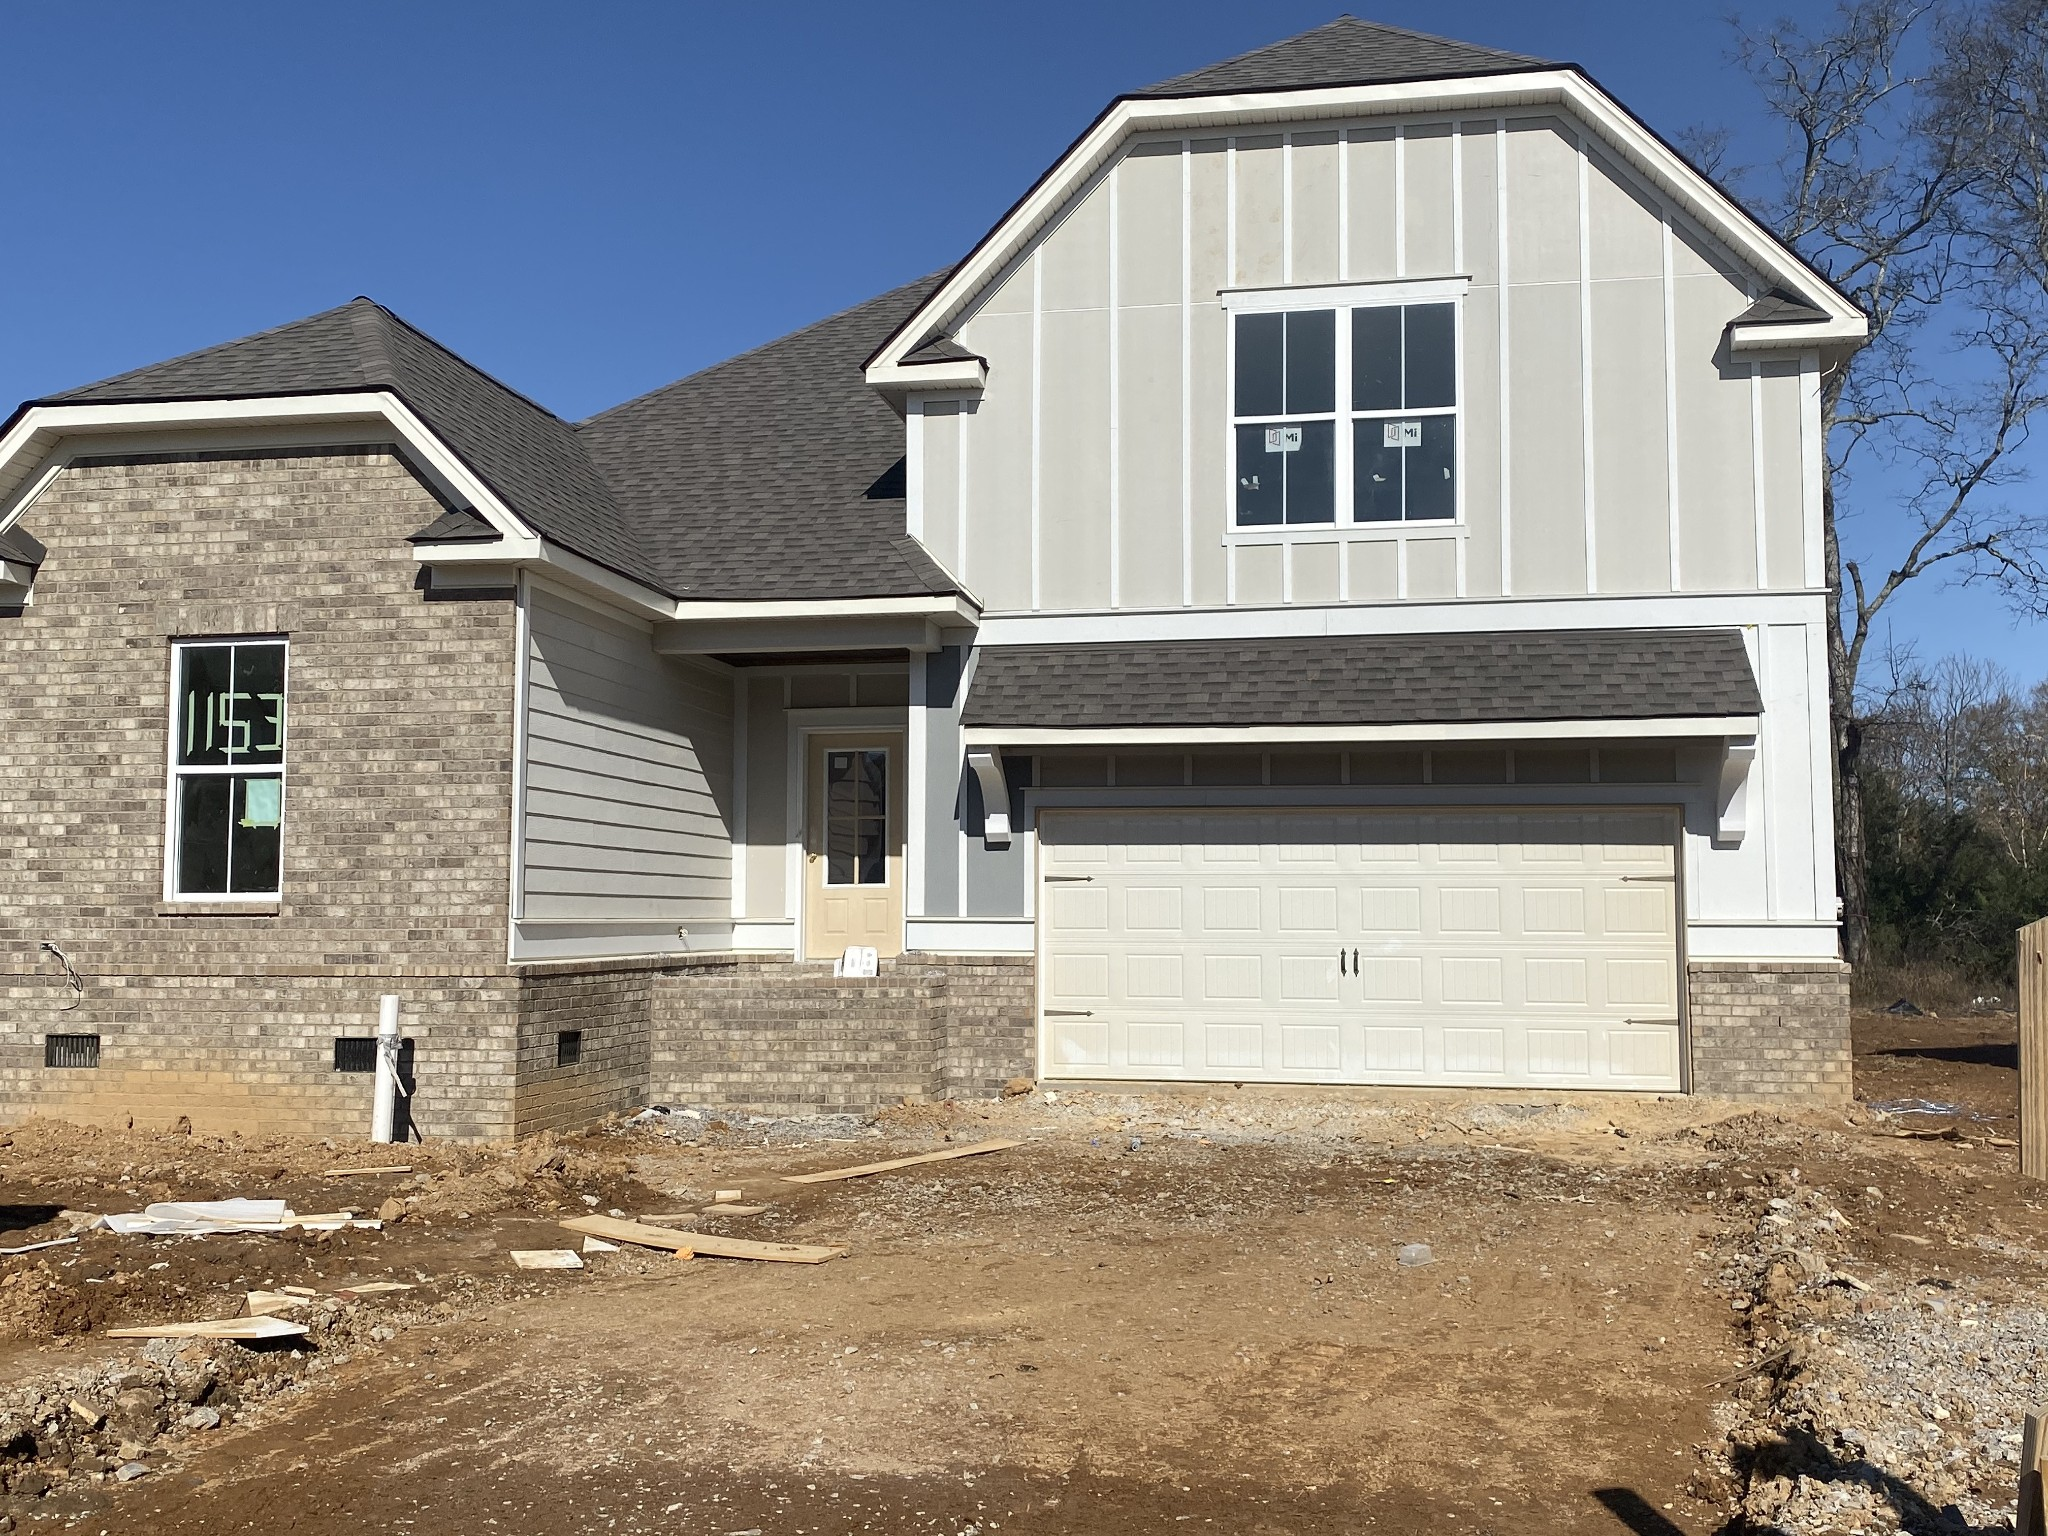 2776 Cloister Ln - Lot 1153, Thompsons Station, TN 37179 - Thompsons Station, TN real estate listing